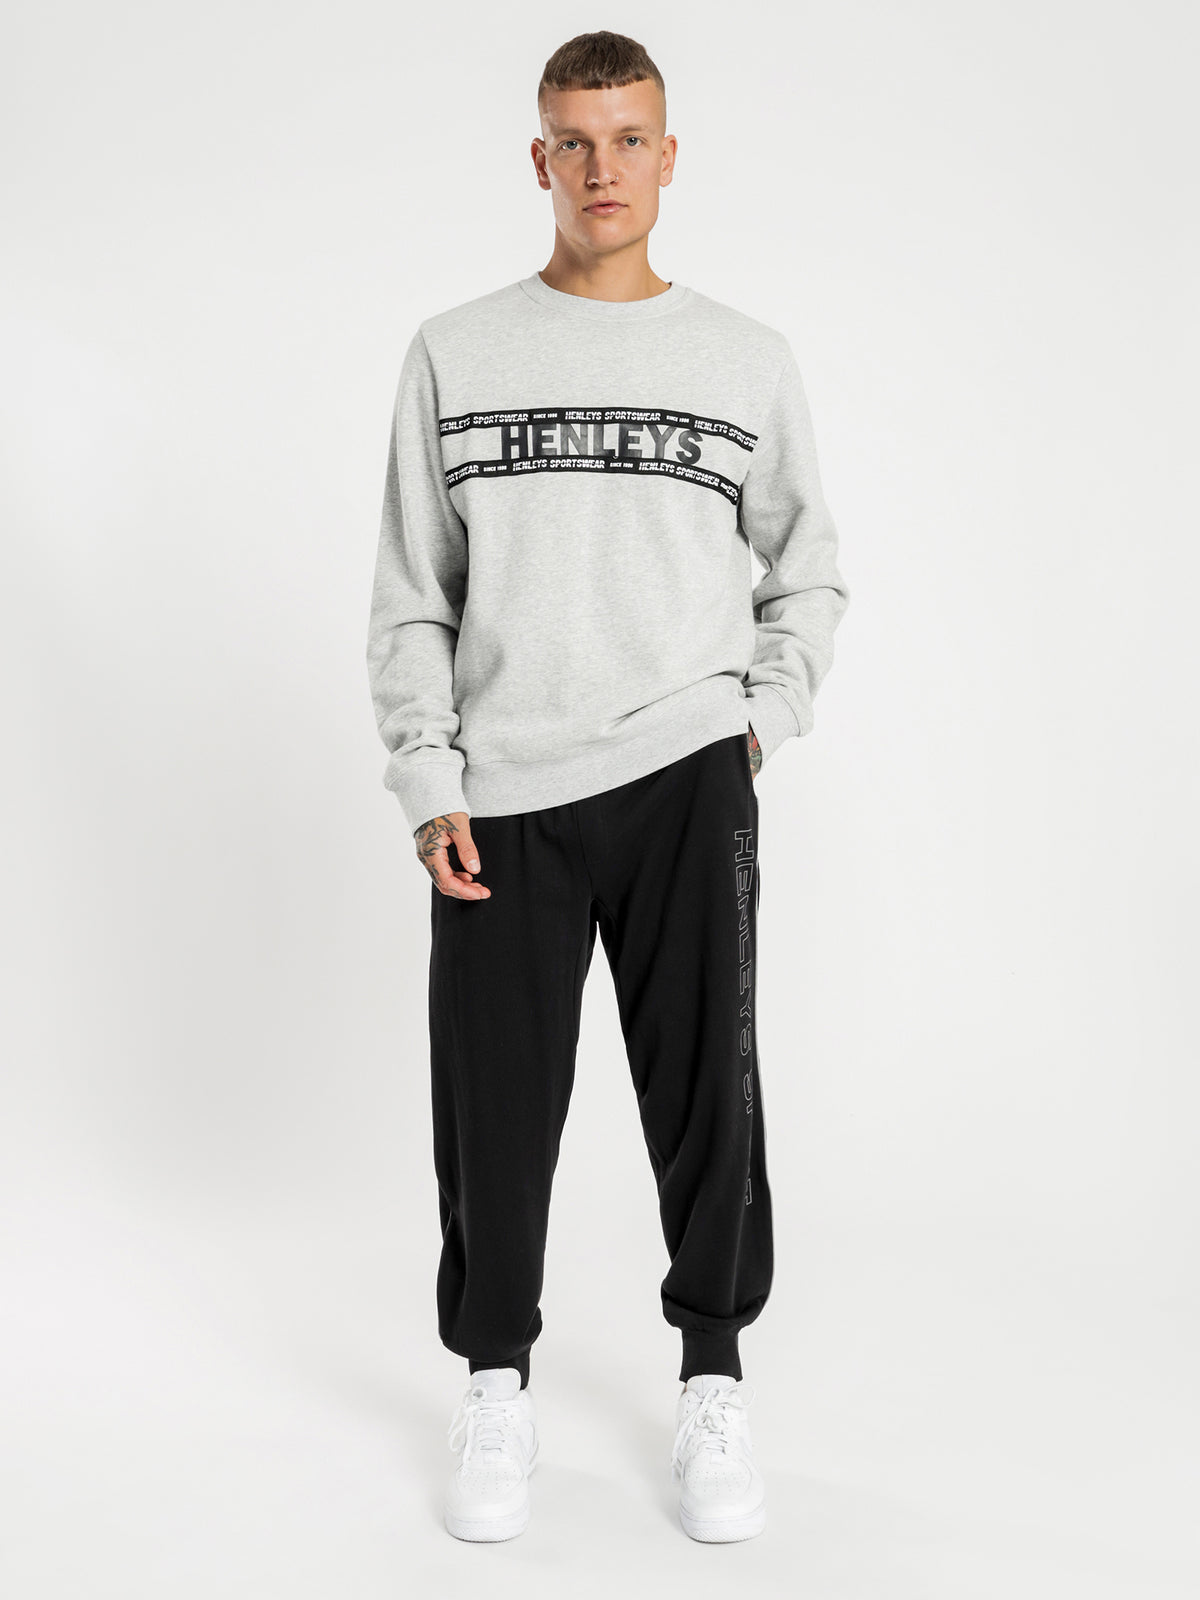 Marsh Crew Jumper in Grey